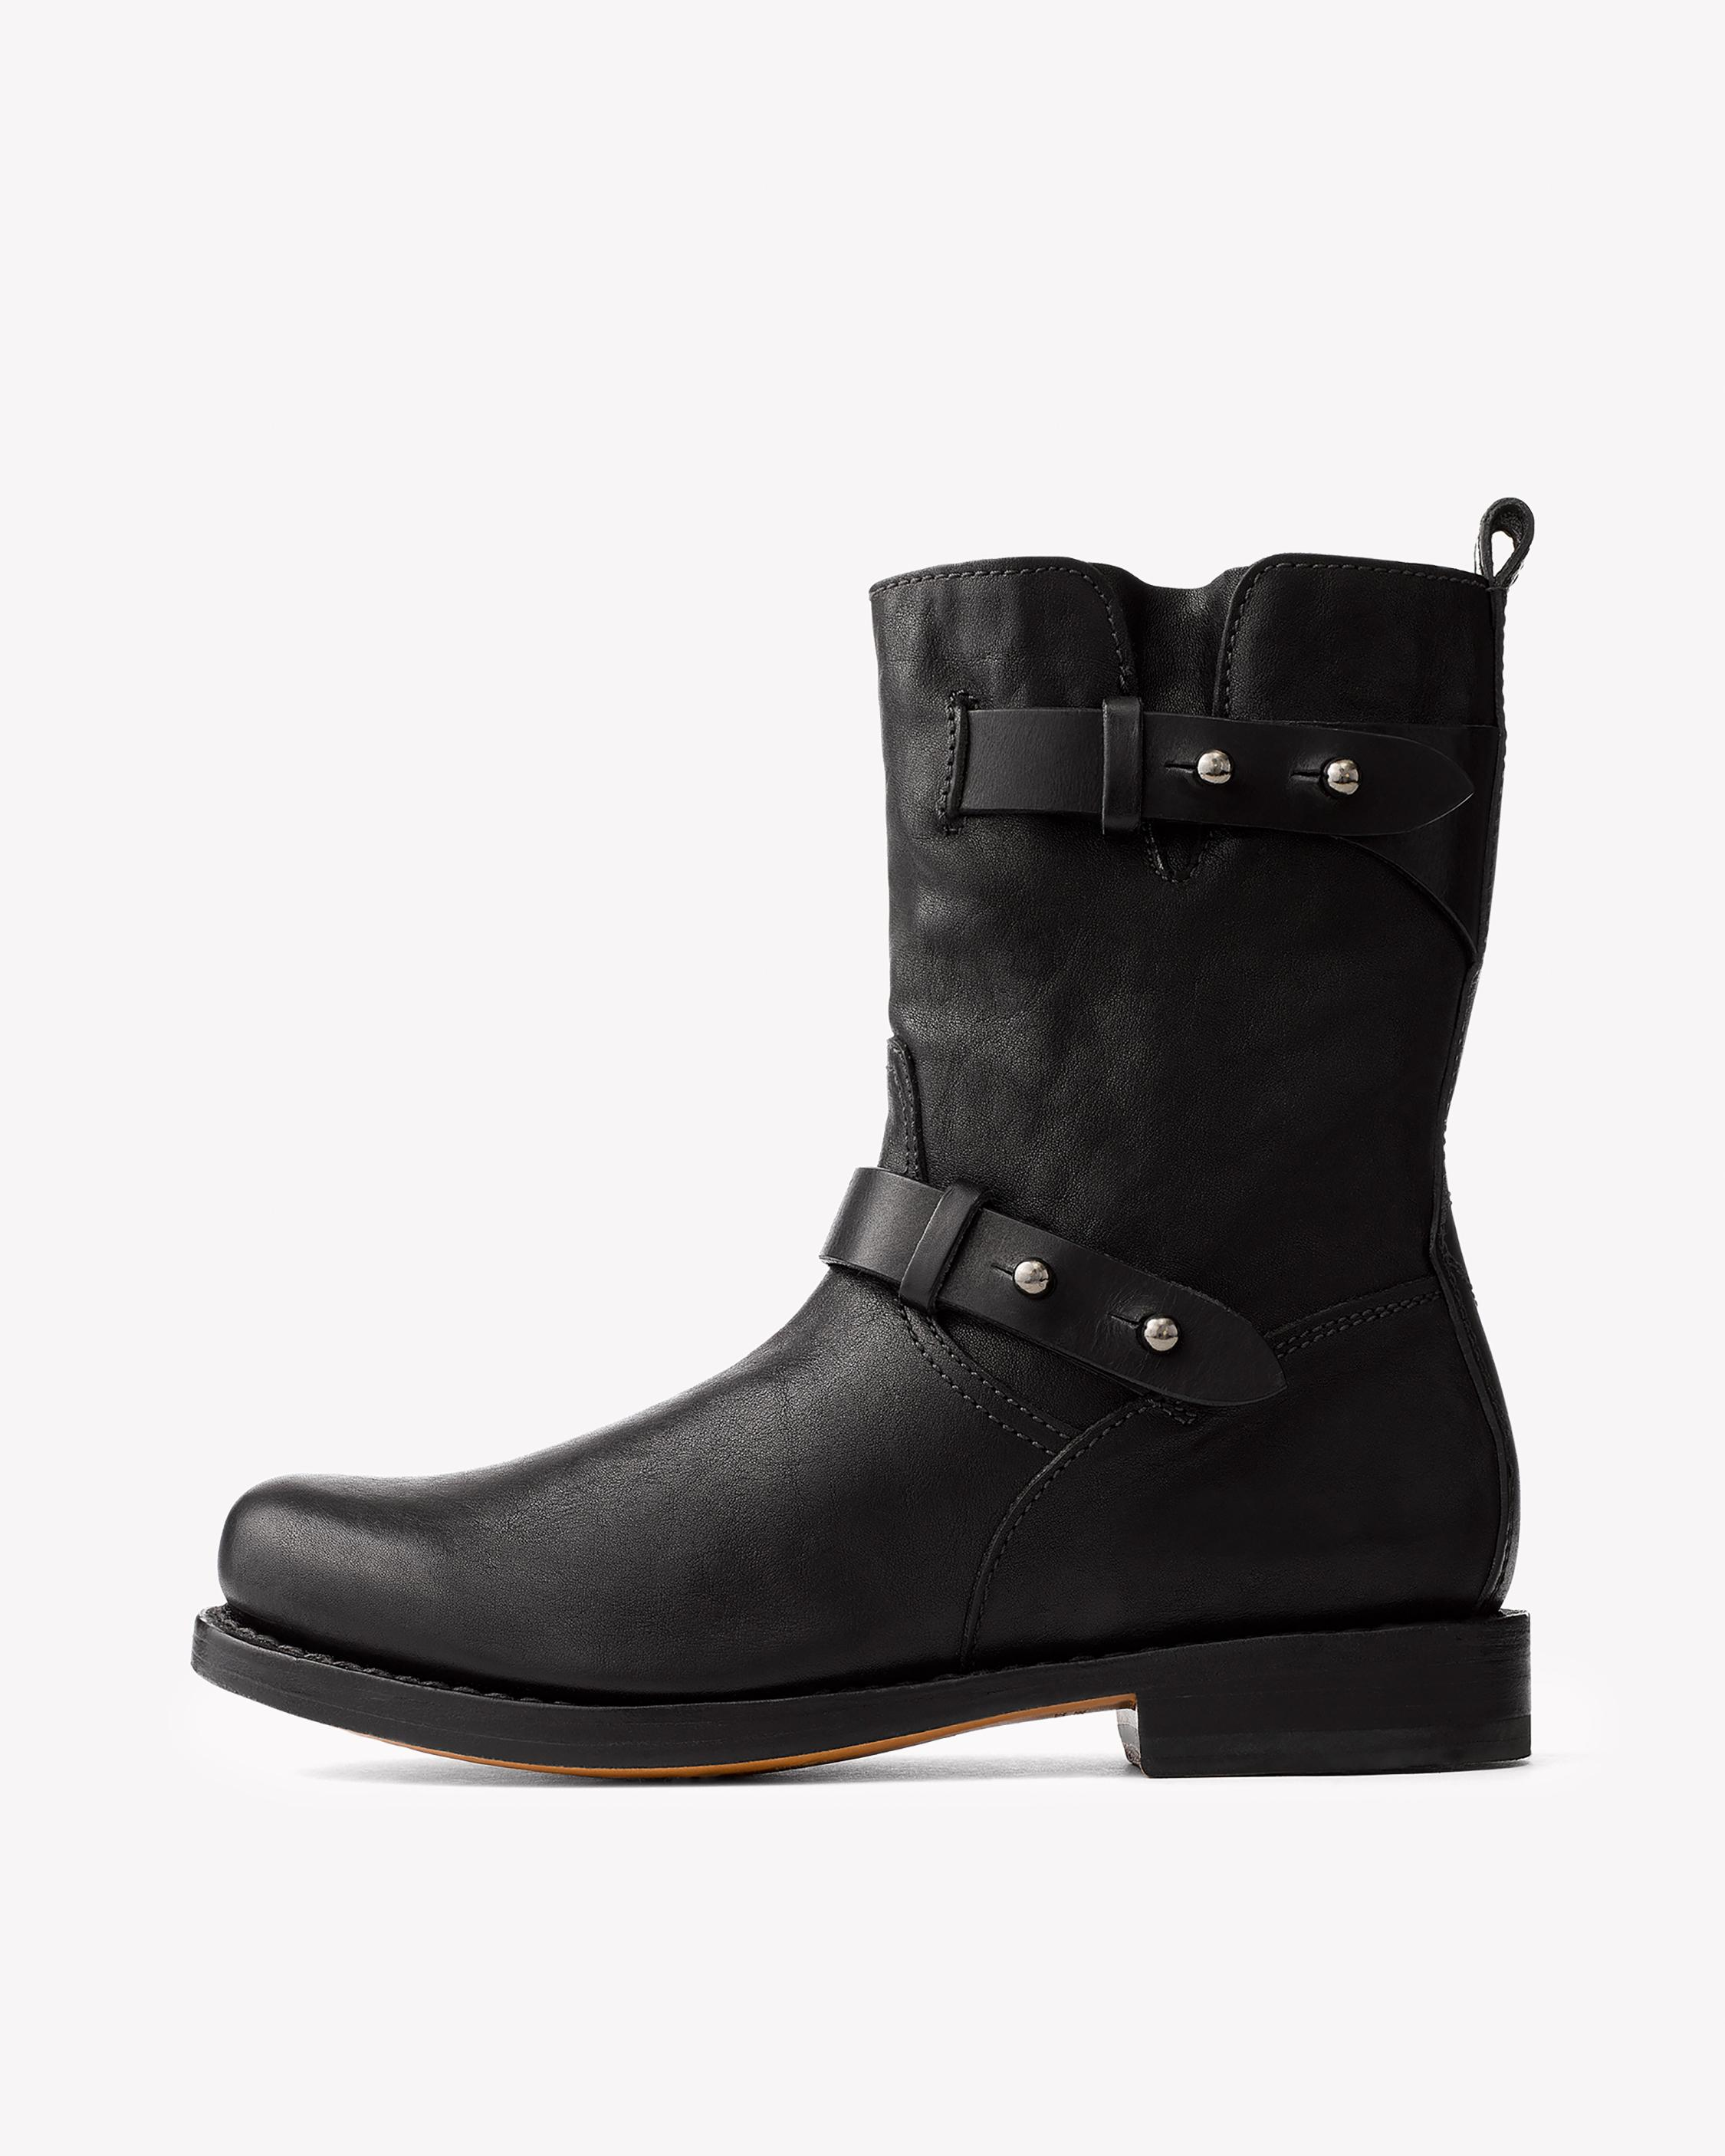 RAG&BONE Leather Biker Boots etoecPVX